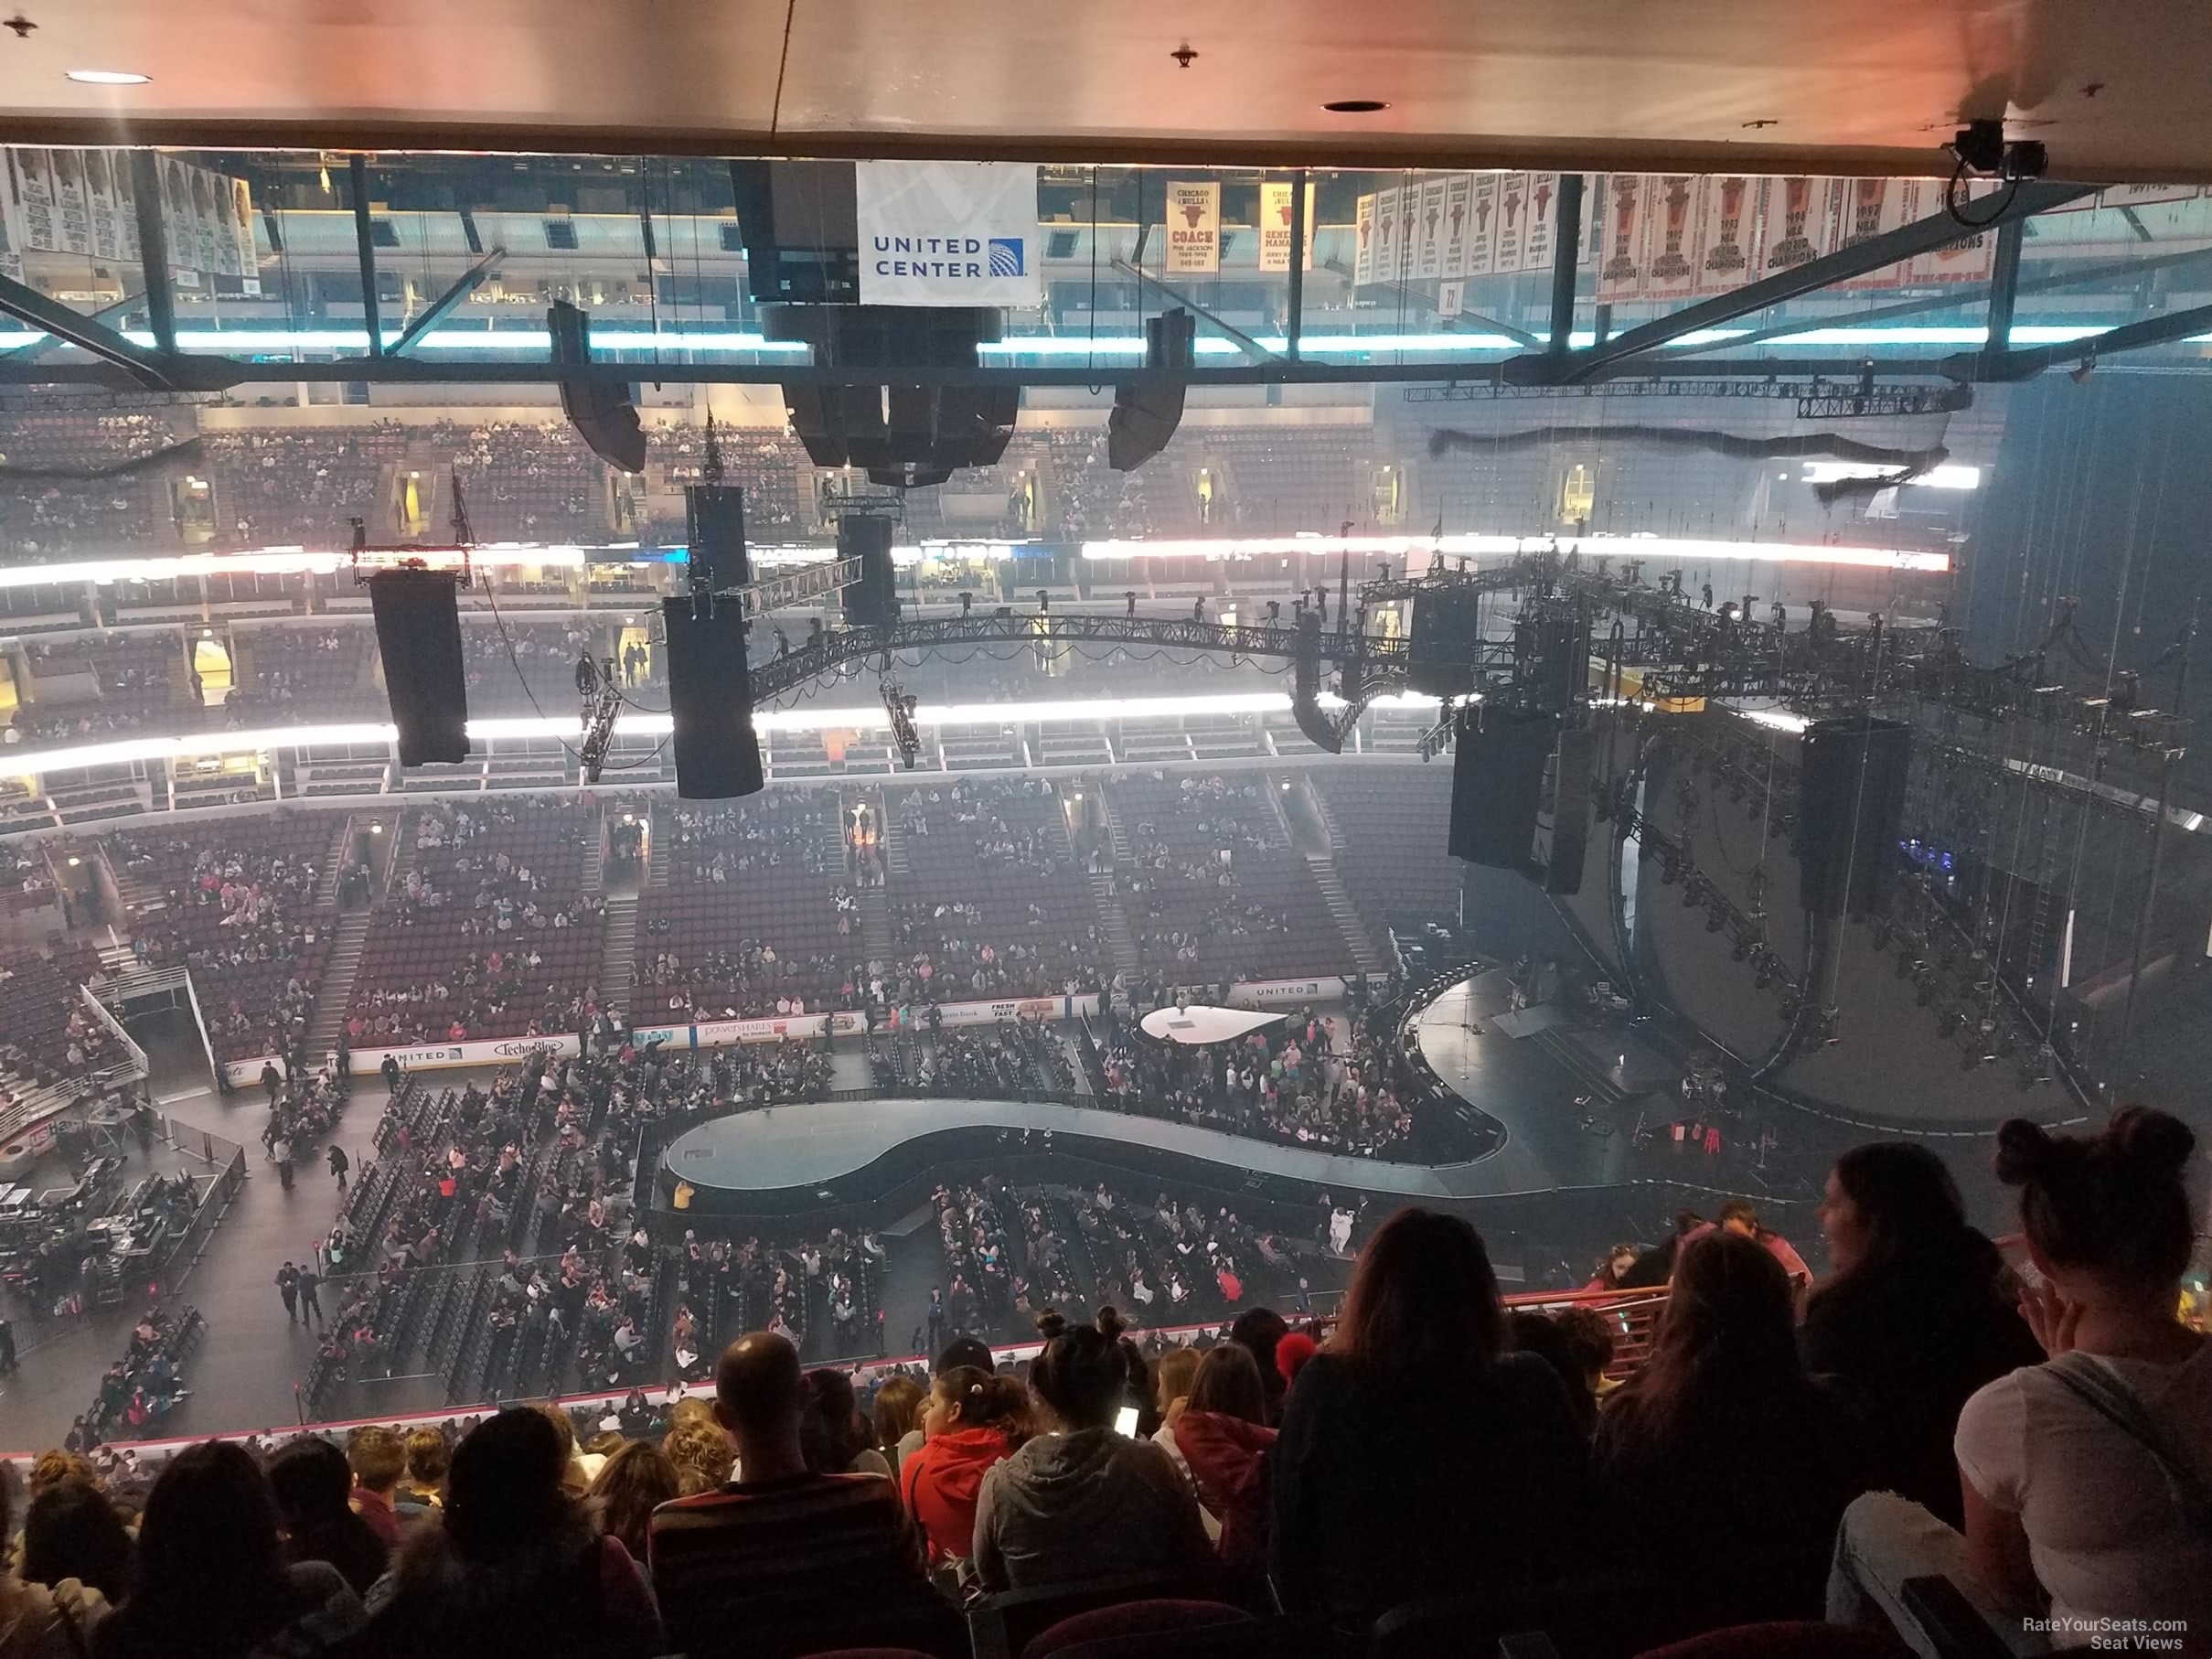 united center section 301 concert seating rateyourseats com